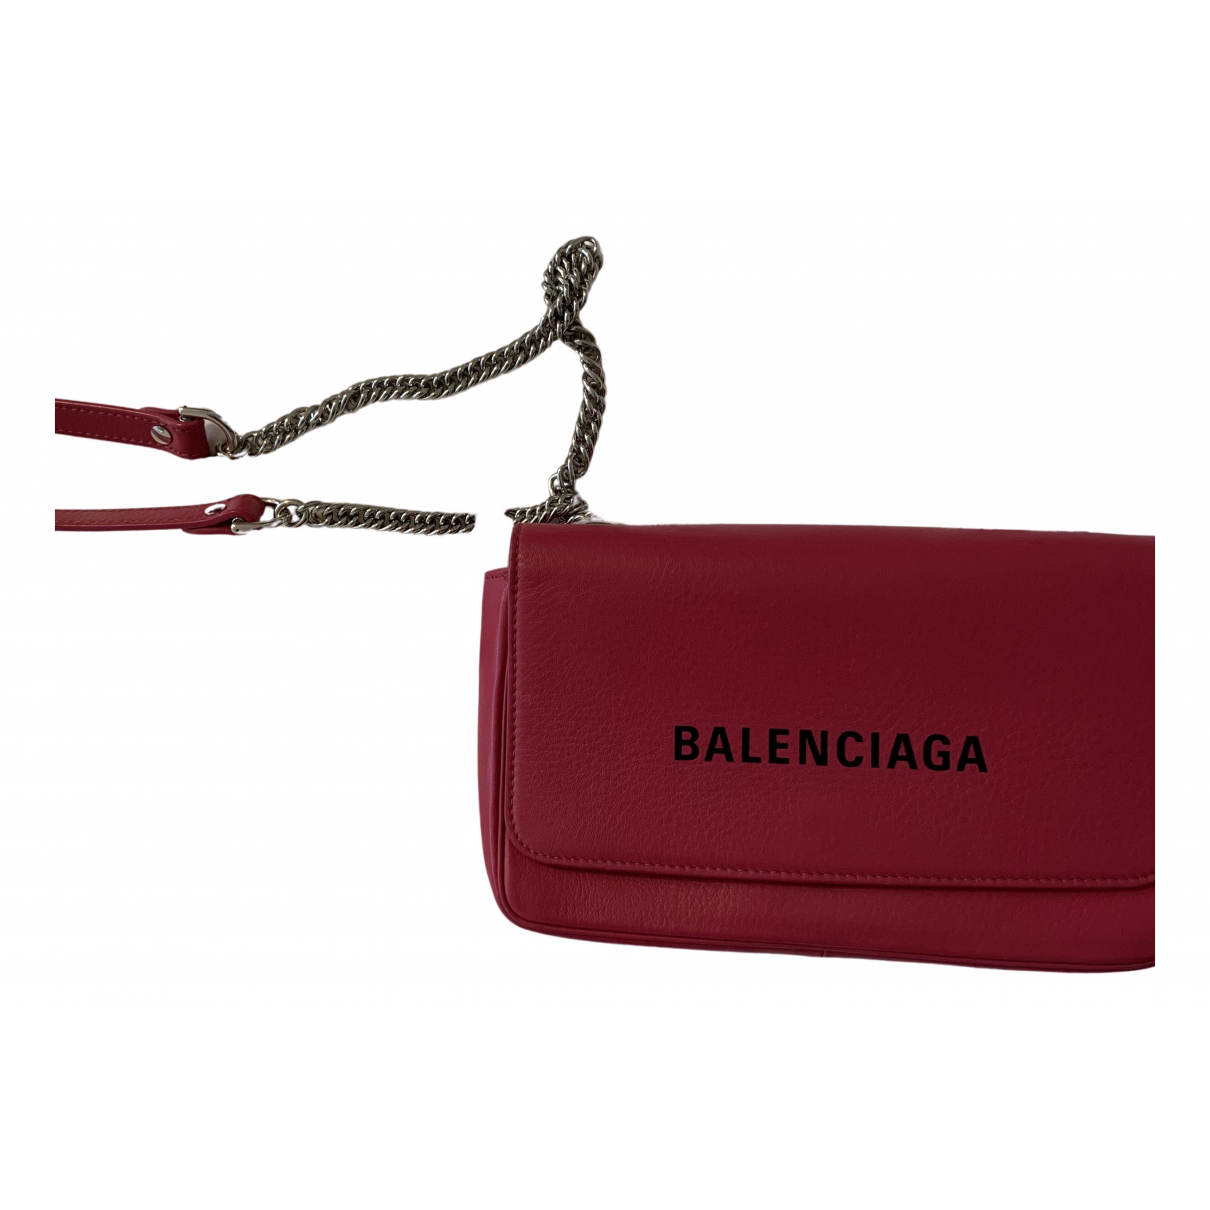 Balenciaga Everyday Pink Leather Clutch bag for Women \N